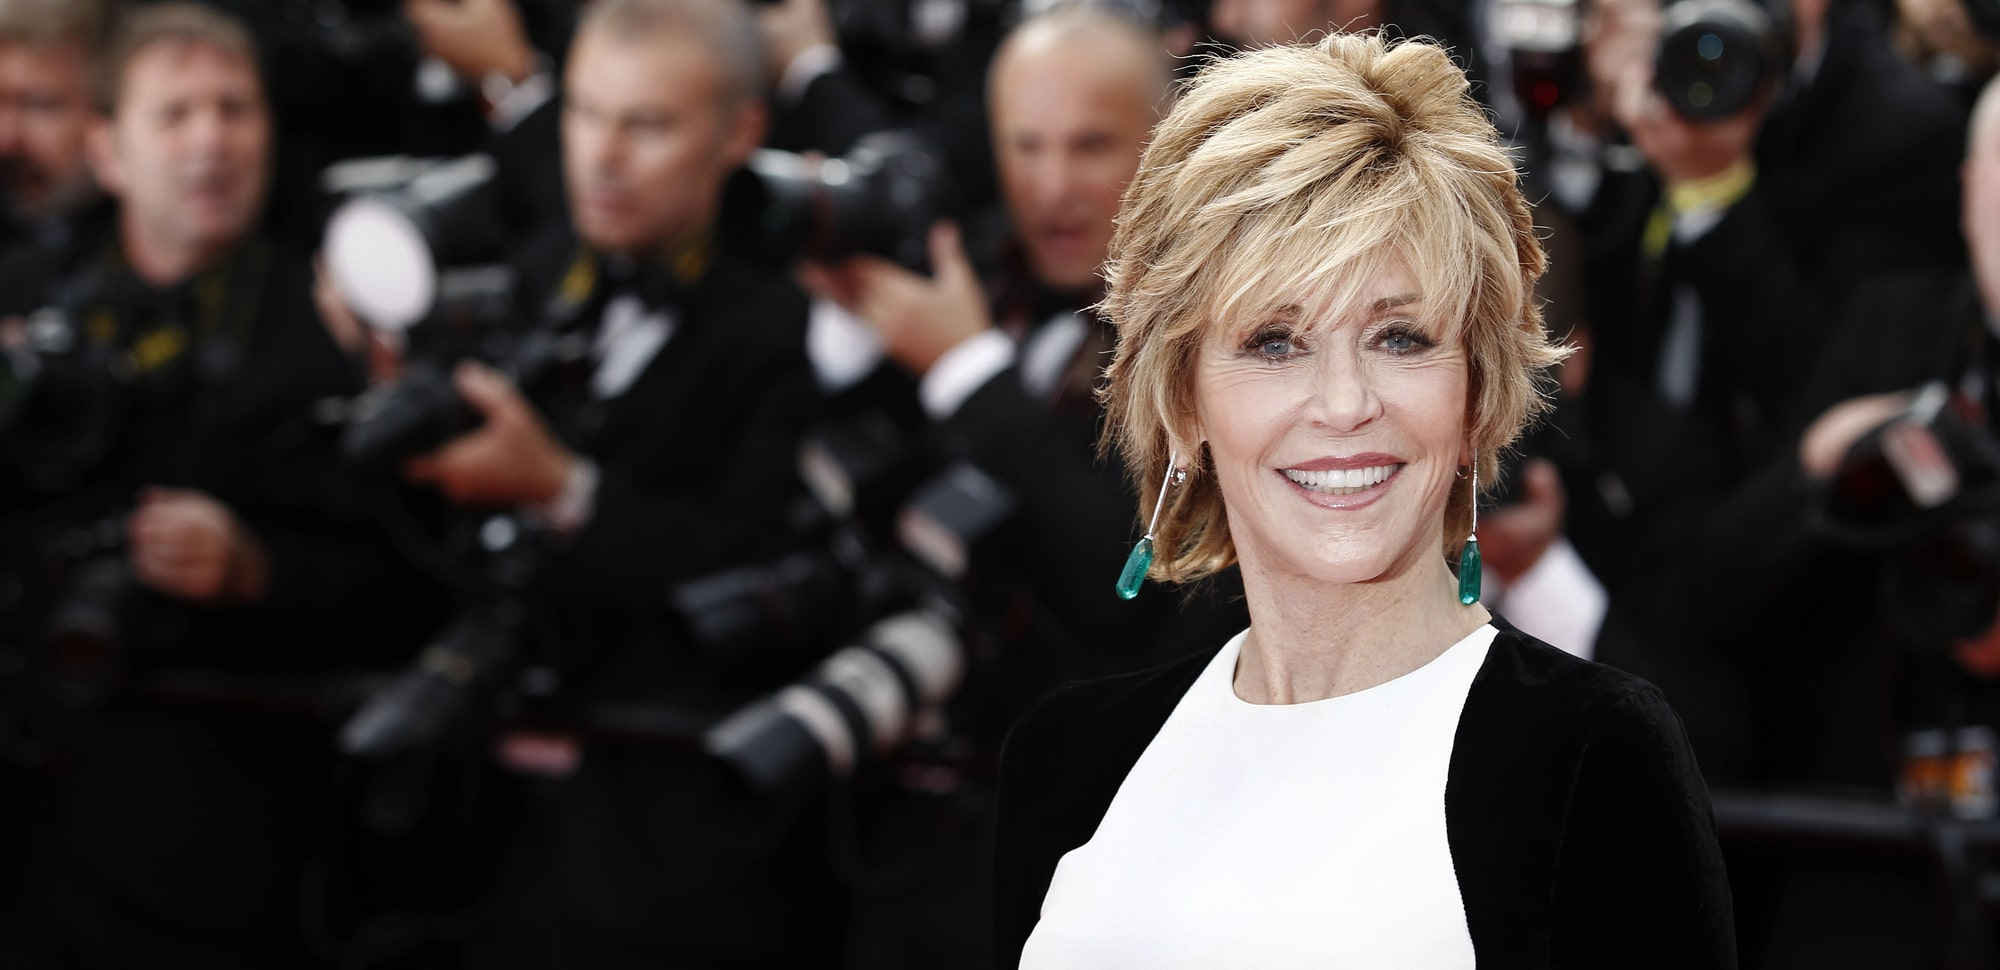 Jane Fonda has announced she is done having plastic surgery